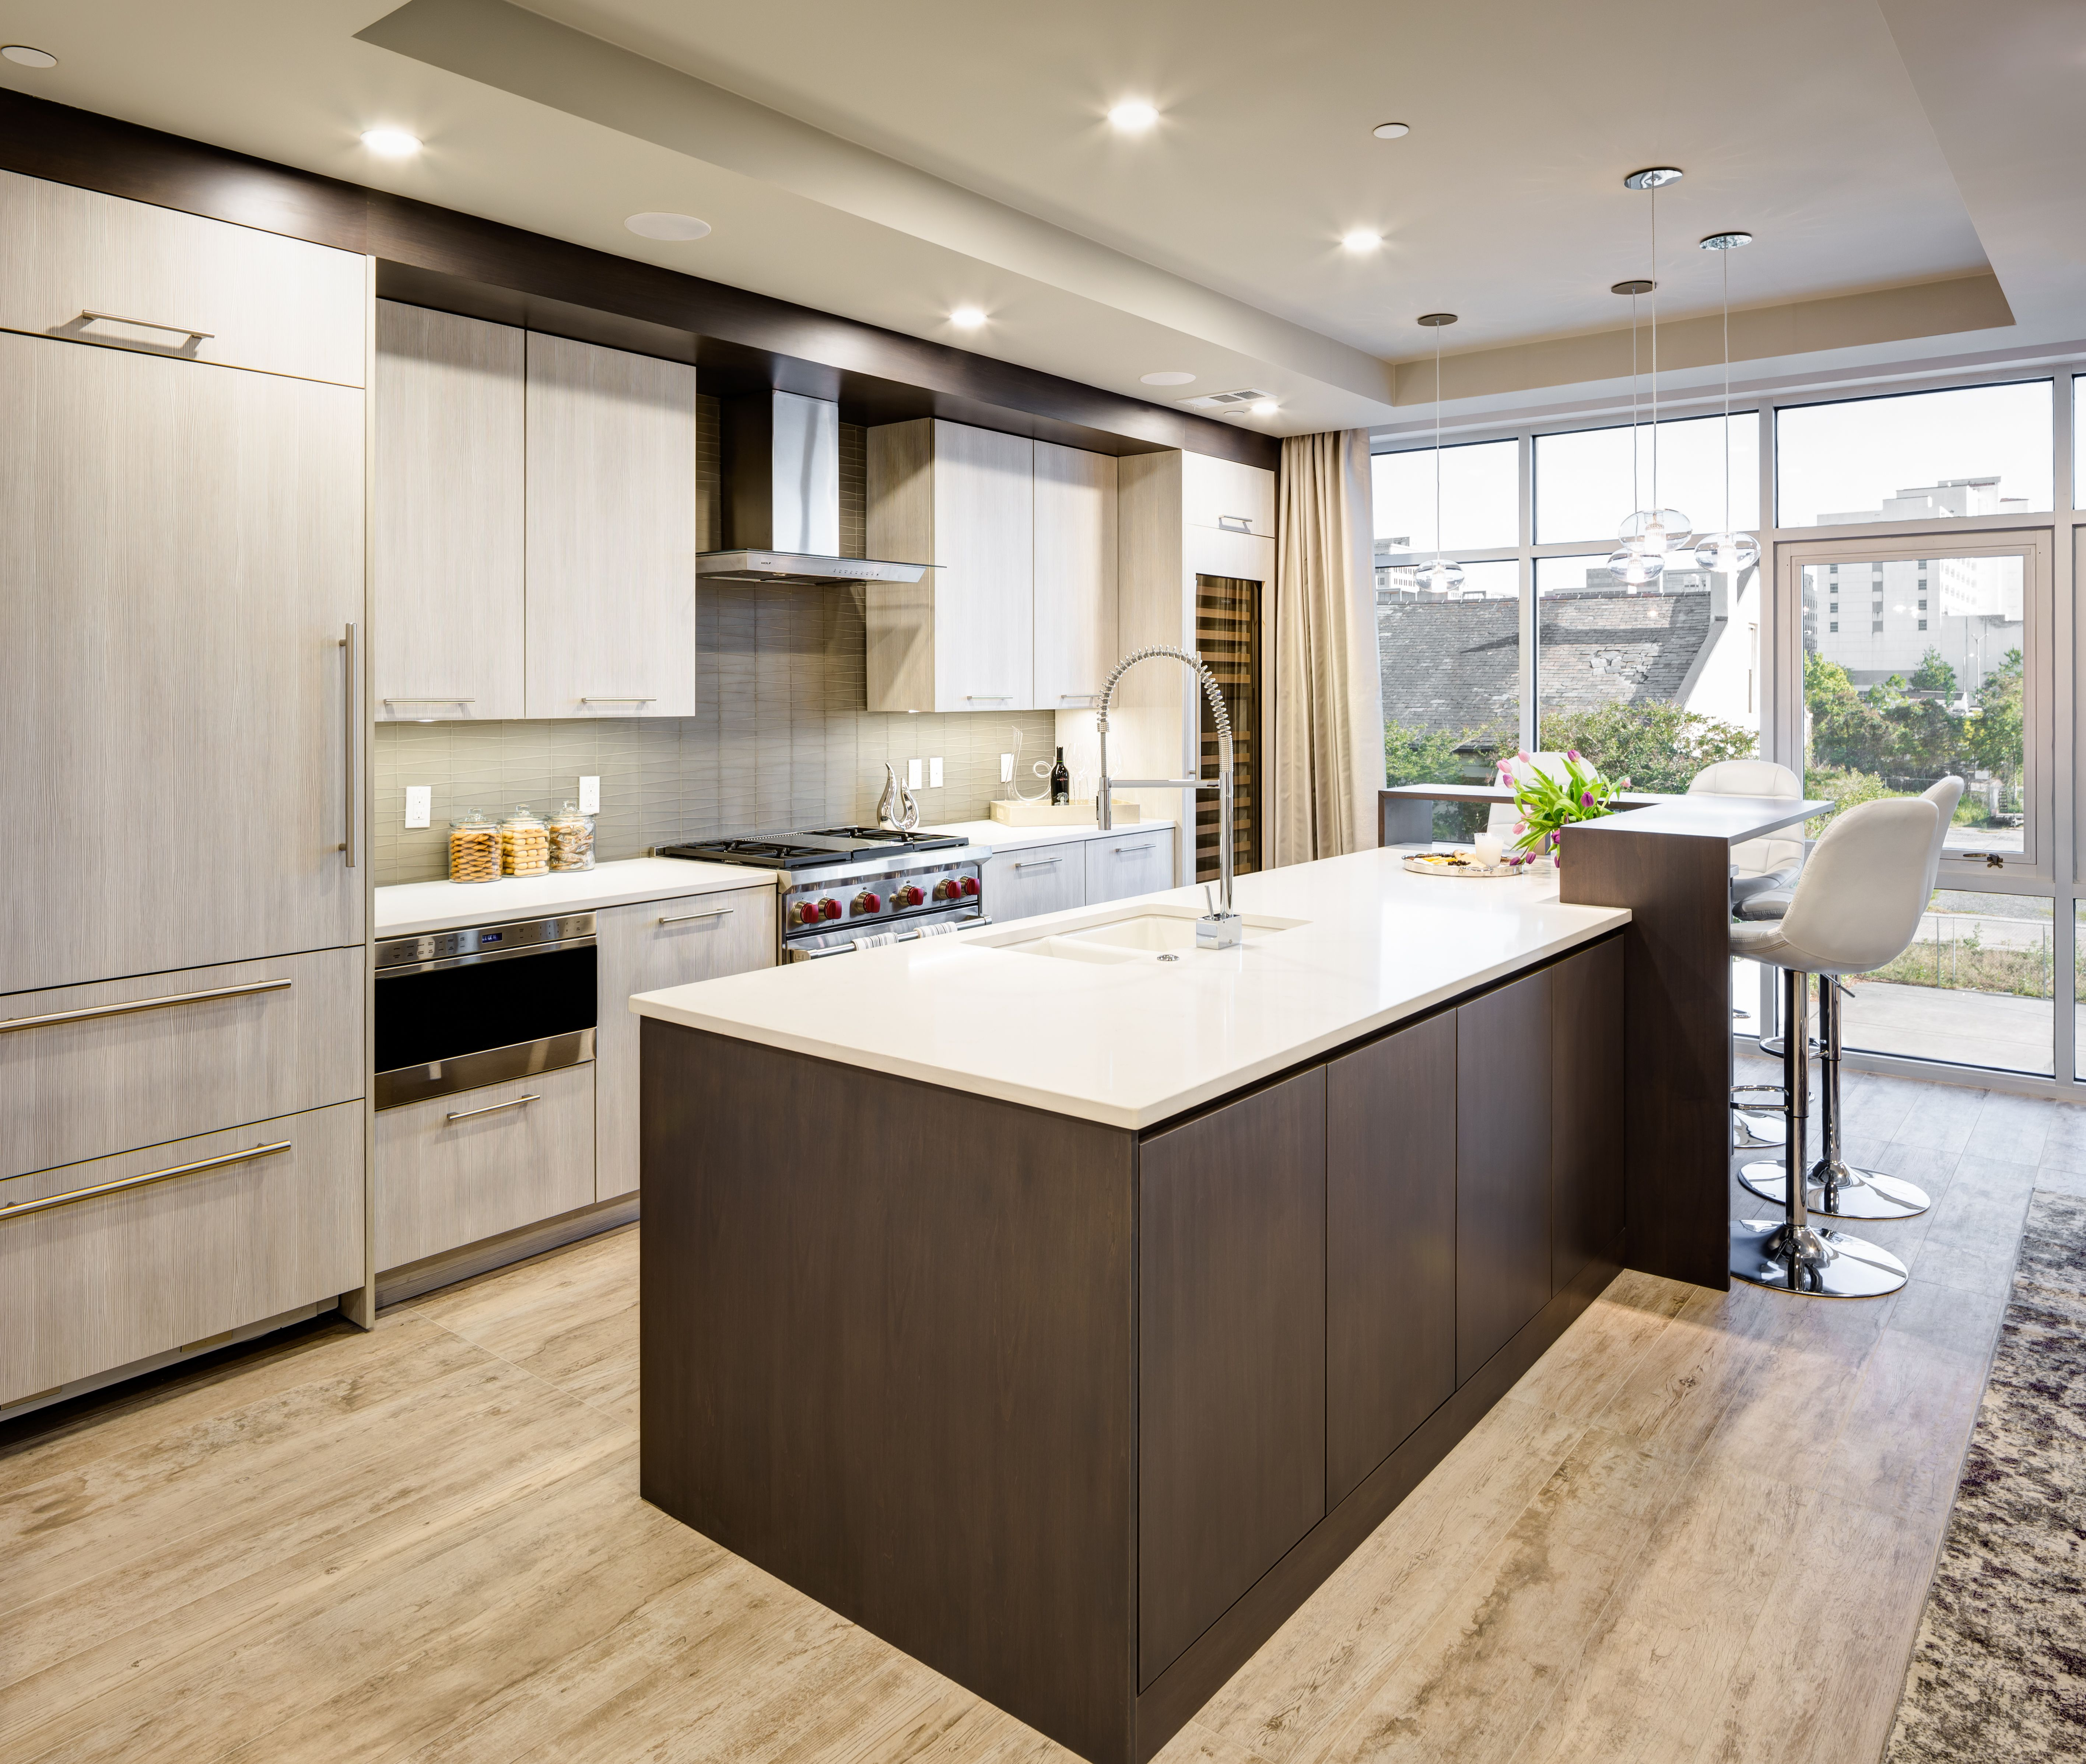 Modern, Sleek Kitchen Design | The Design Studio of ...